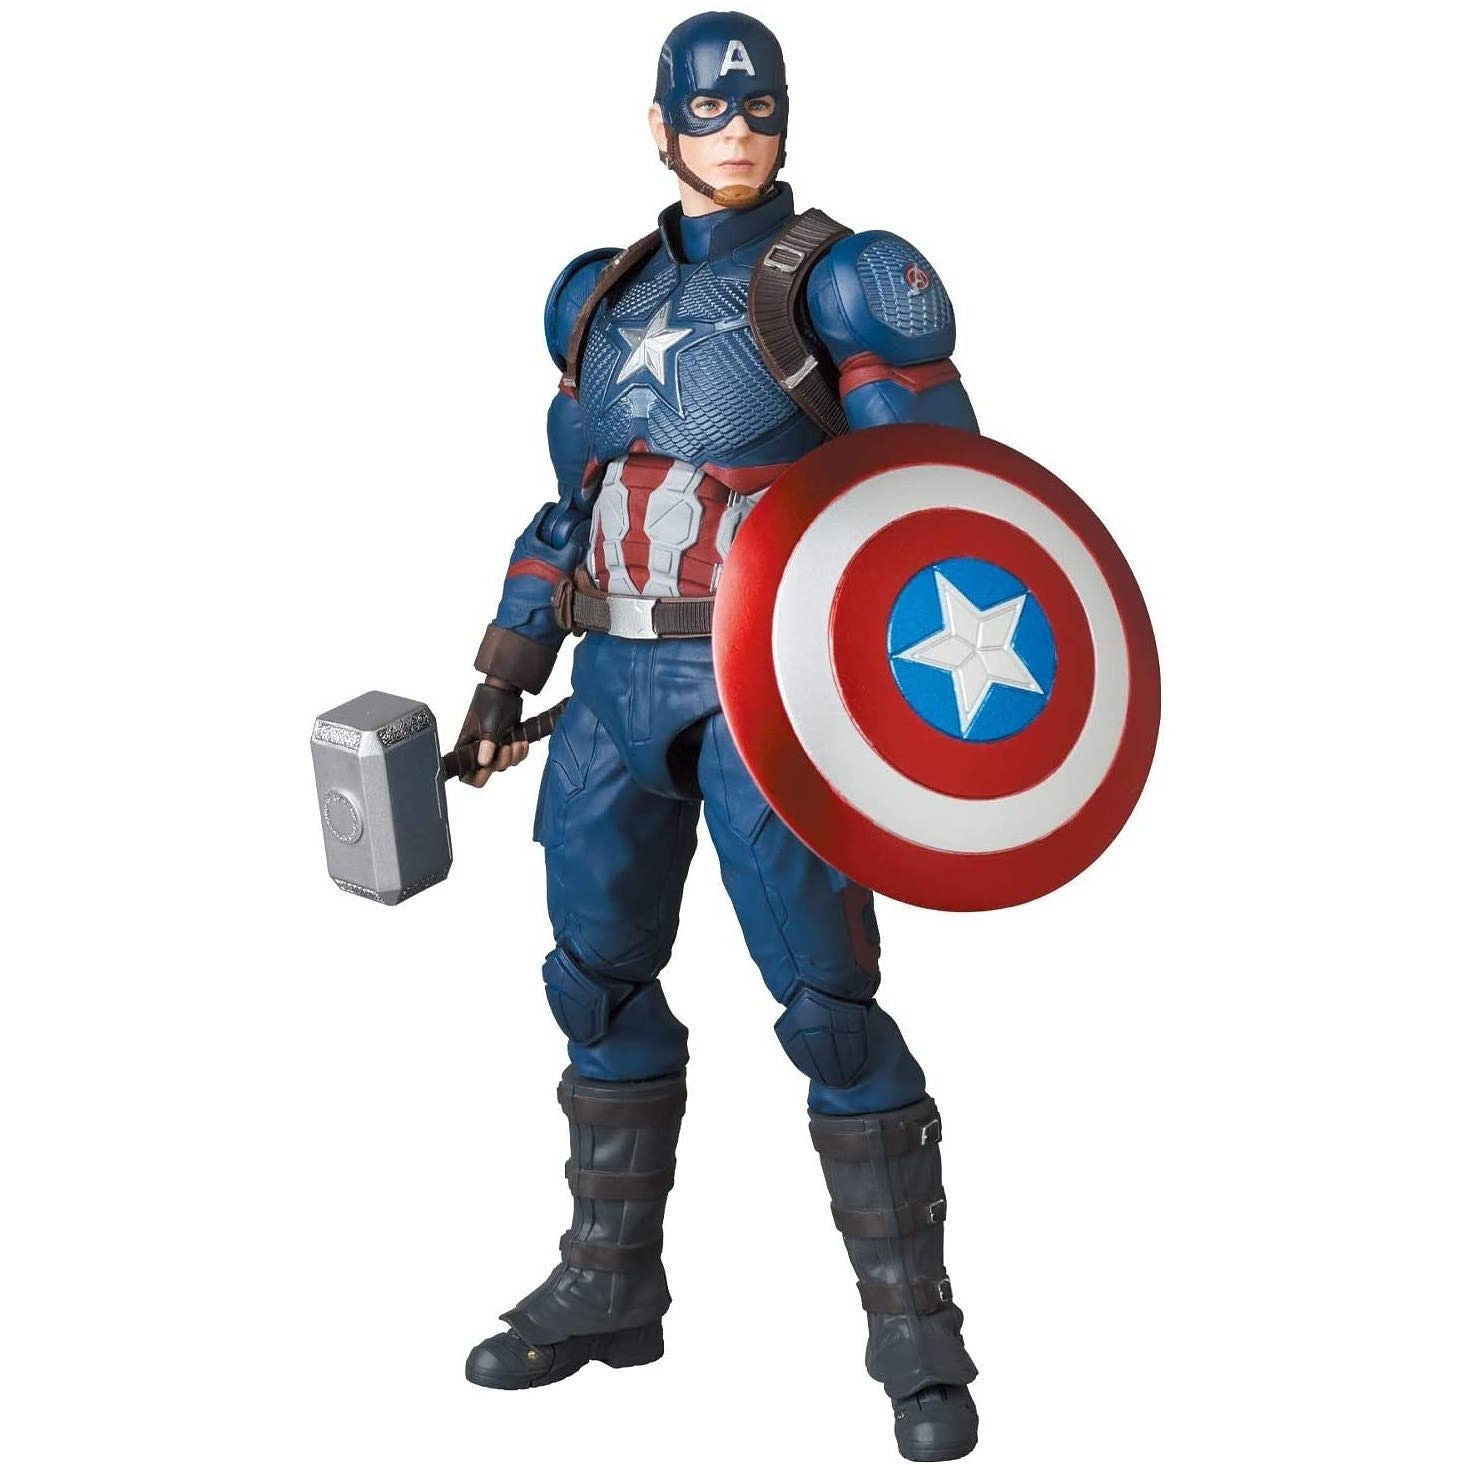 Image of Avengers: Endgame MAFEX No.130 Captain America- MARCH 2021